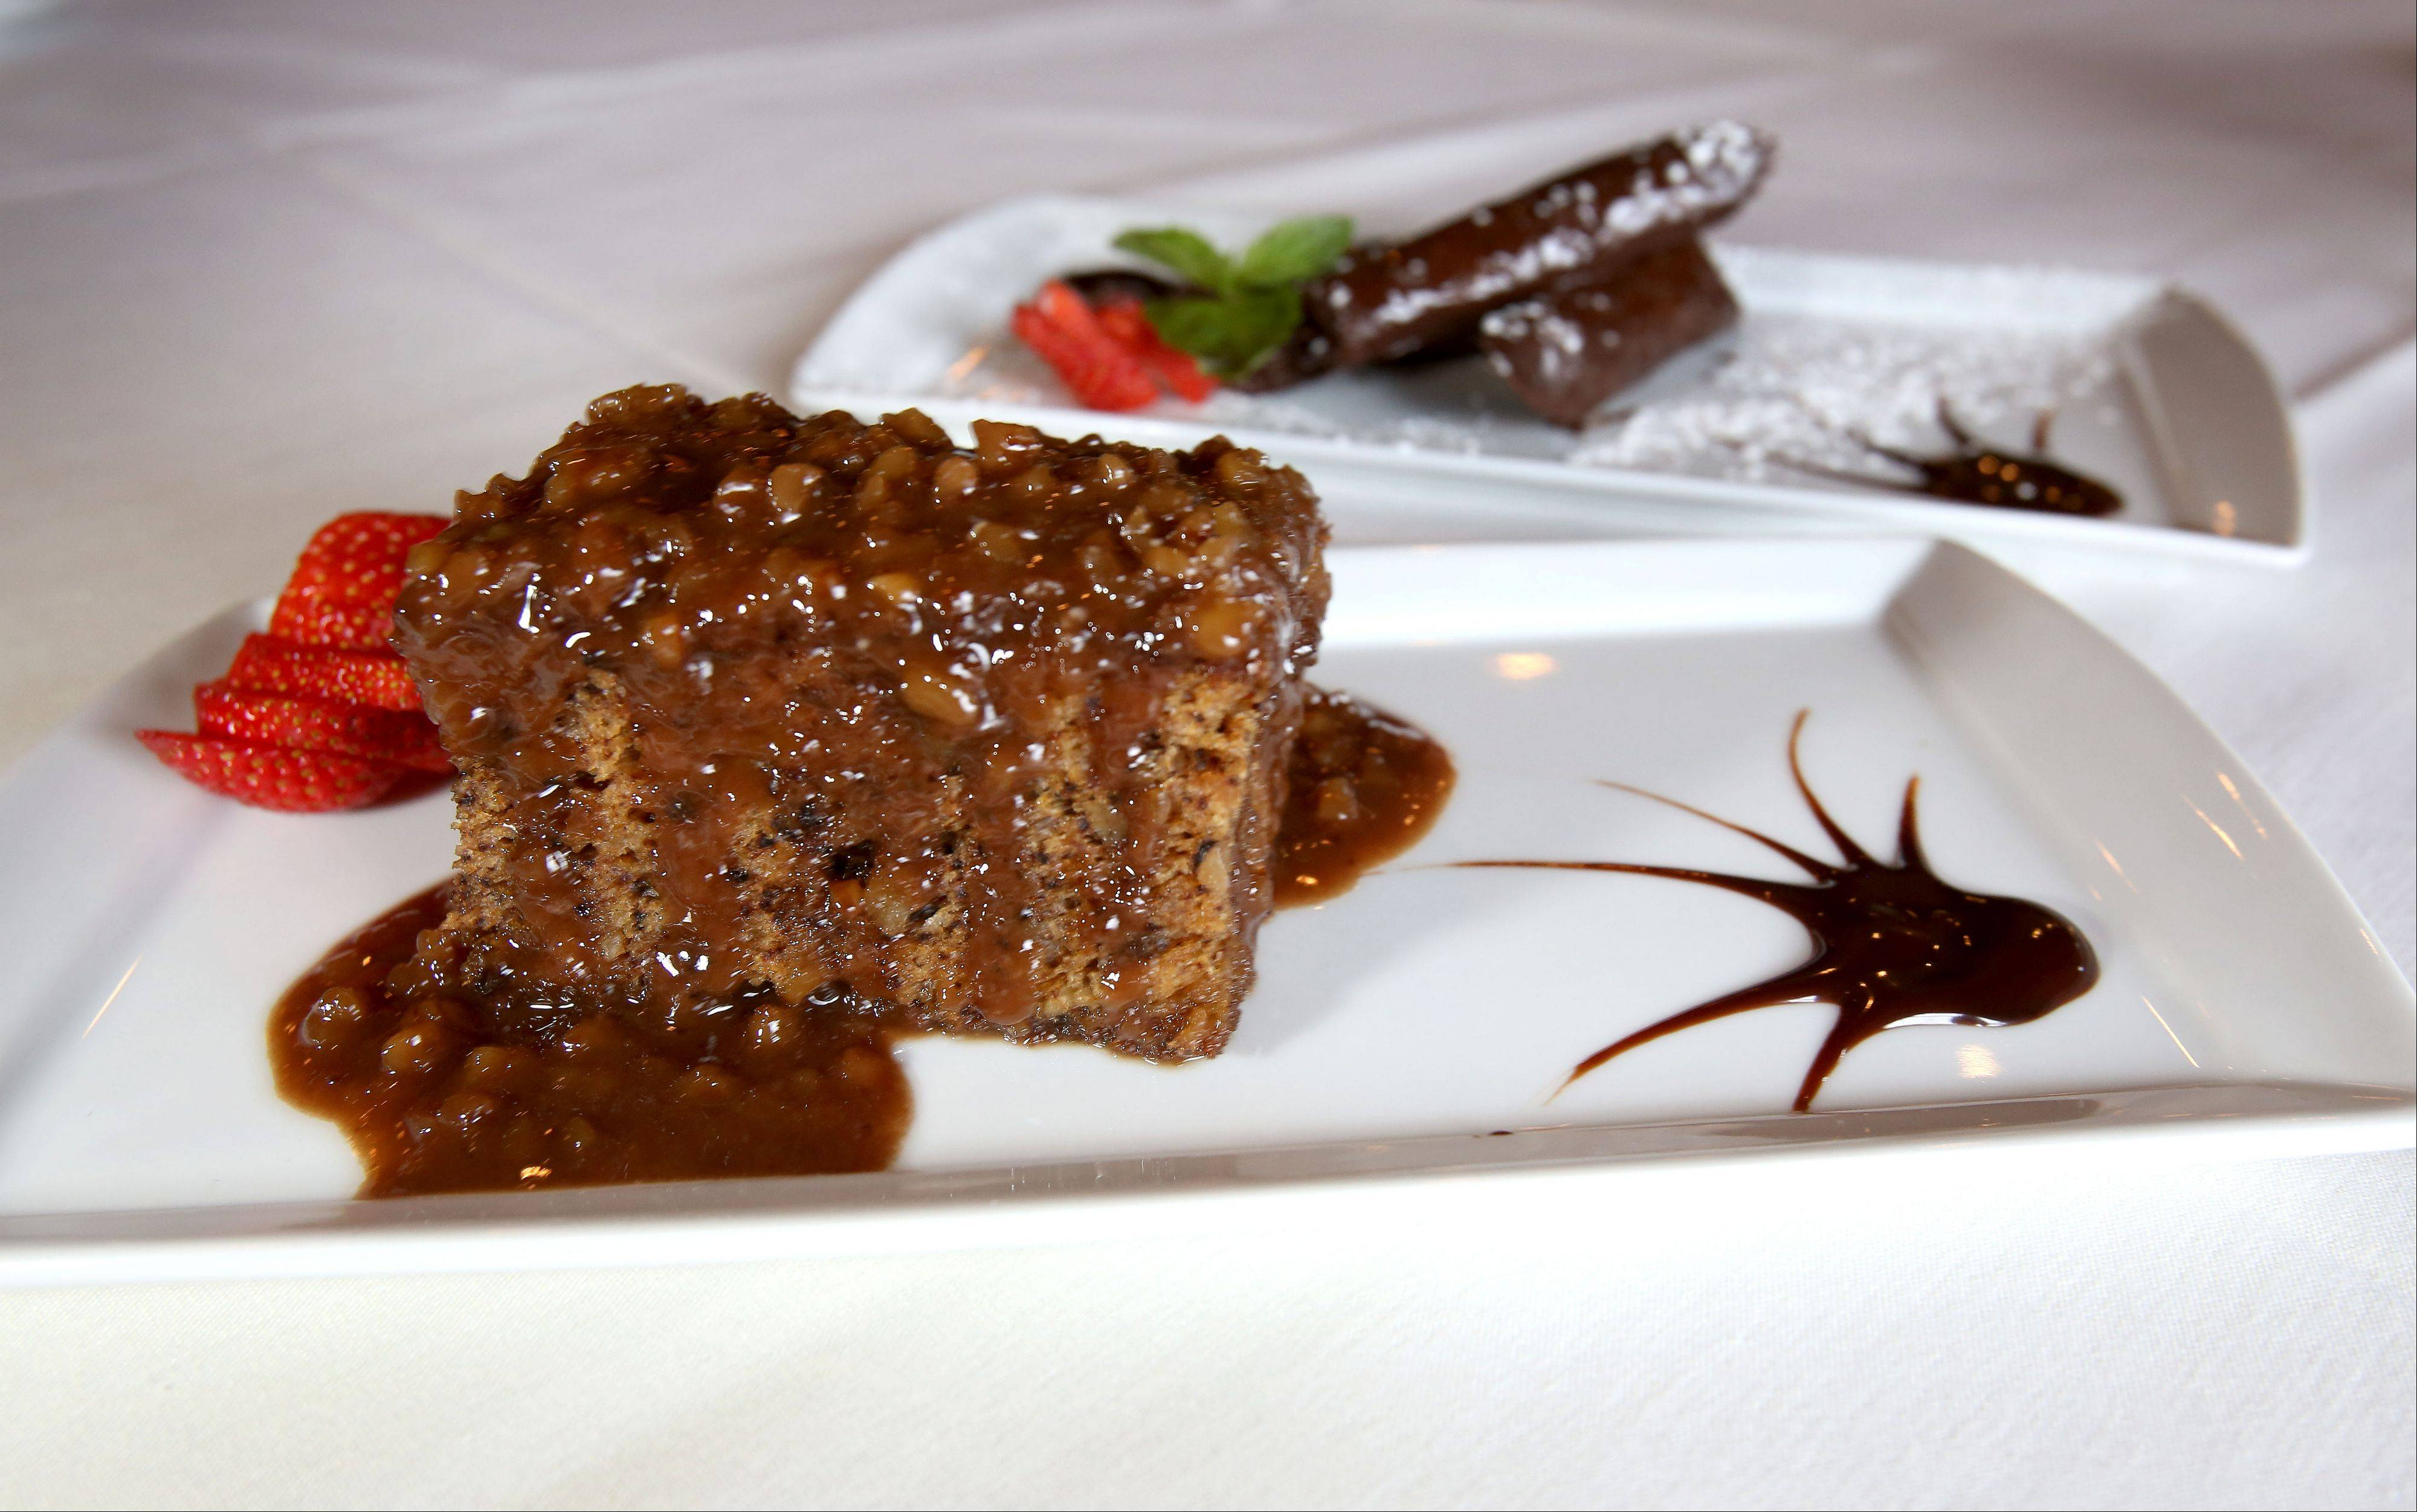 Angela's walnut cake and chocolate baklava are two sweet options for dessert at Basil's Greek Dining in Aurora.